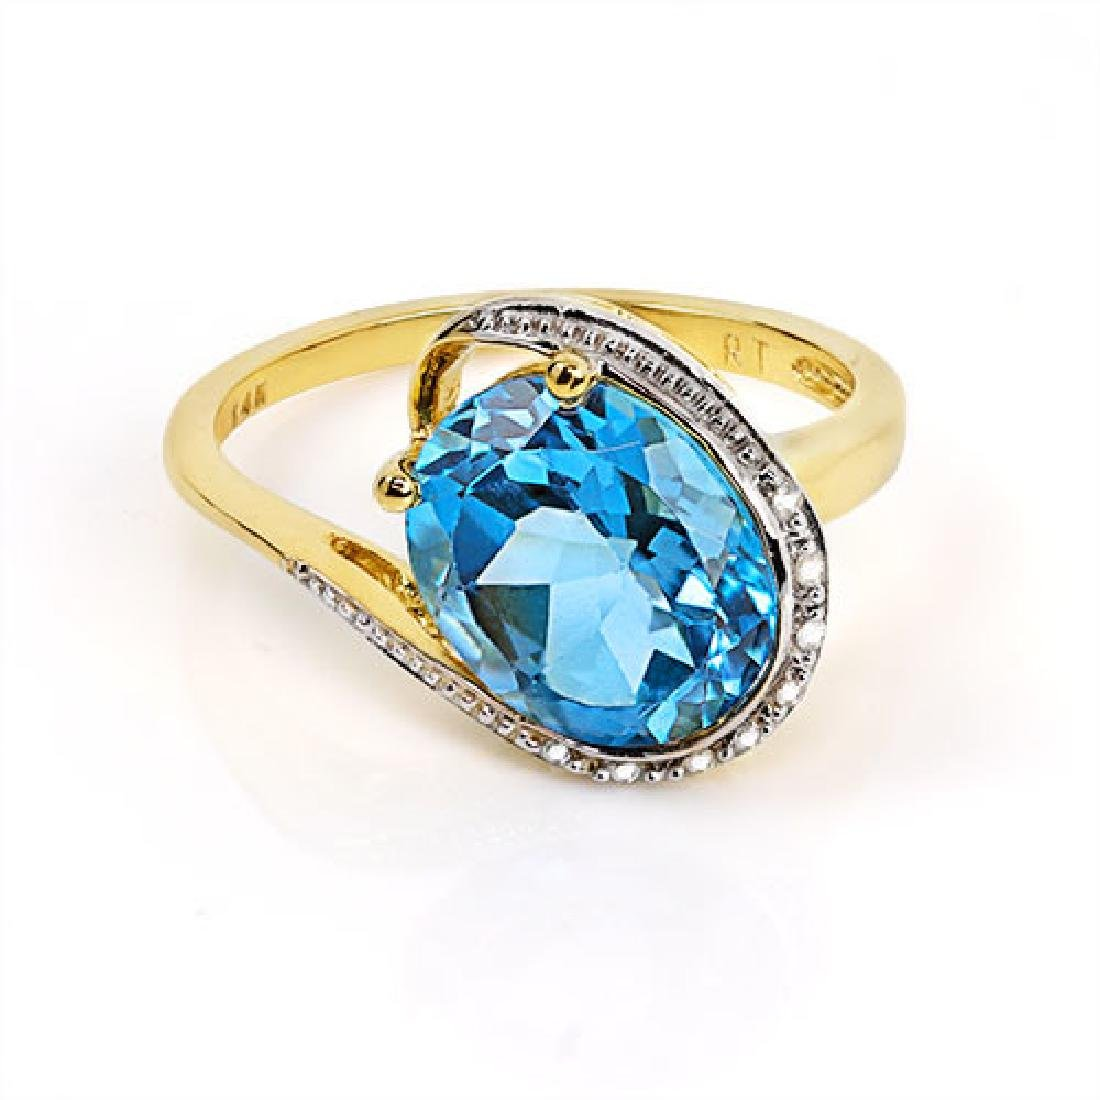 14K WHITE GOLD LONDON BLUE TOPAZ 4.4CT RING WITH - 2